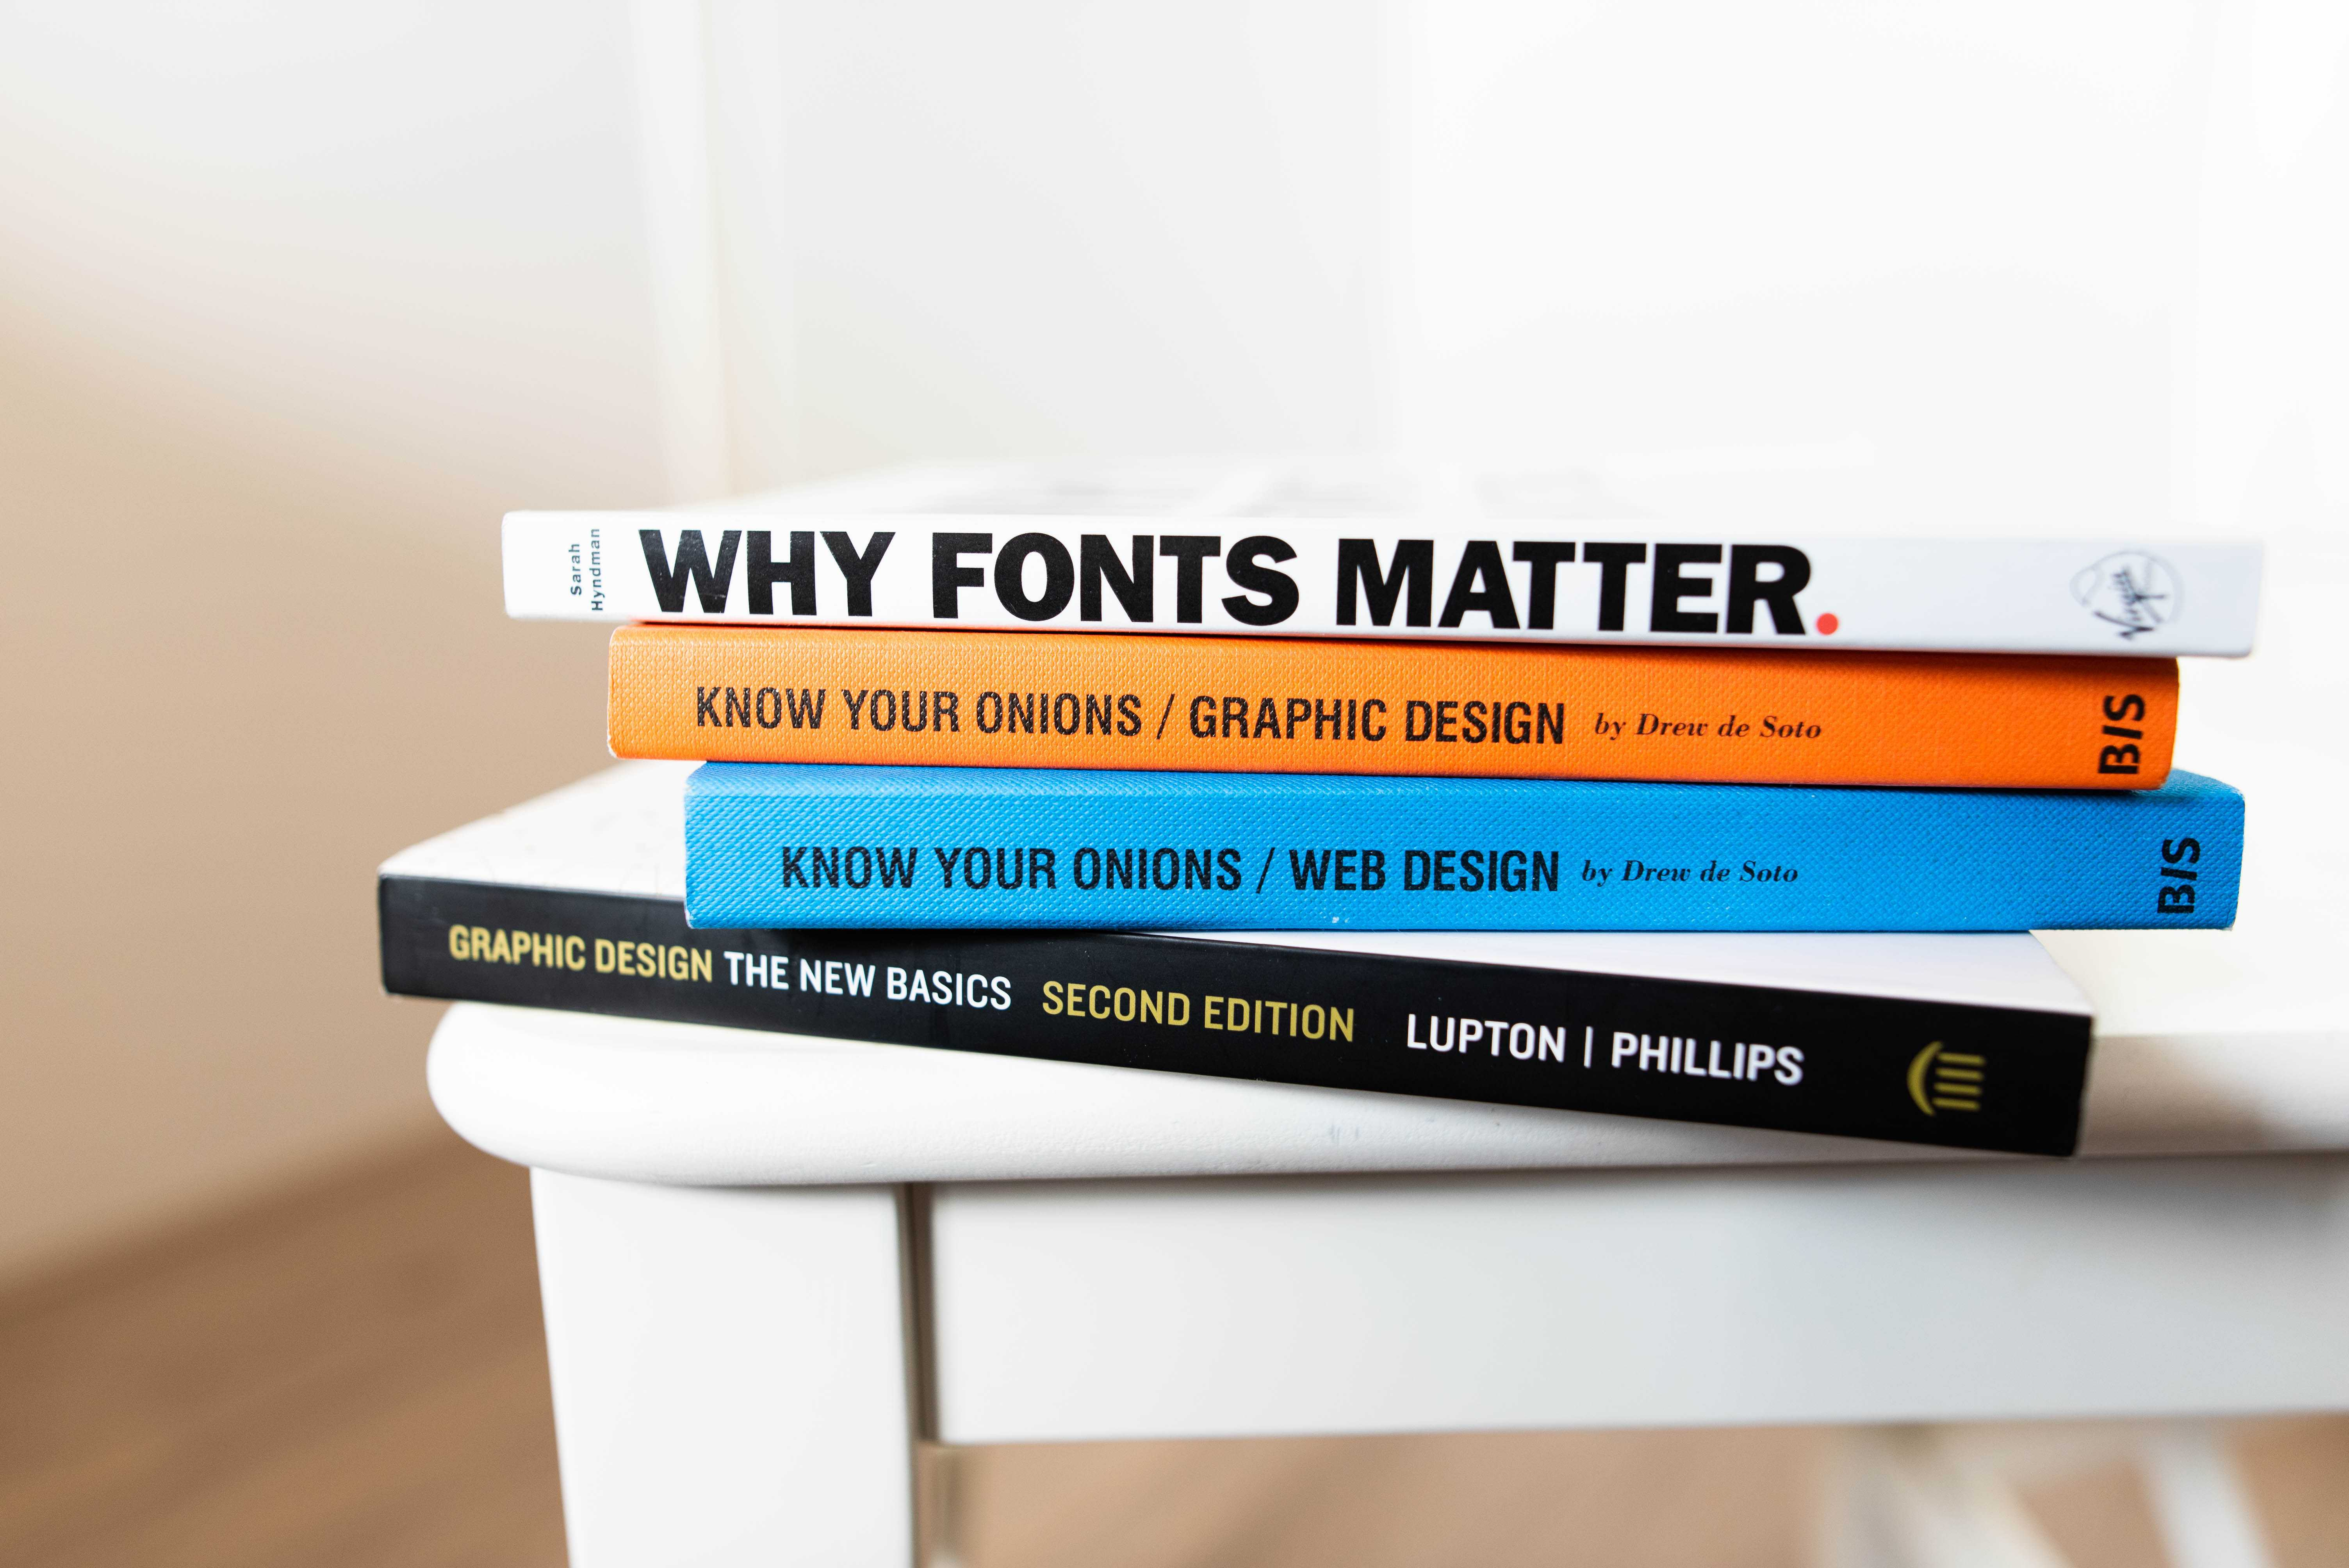 graphic design books on table